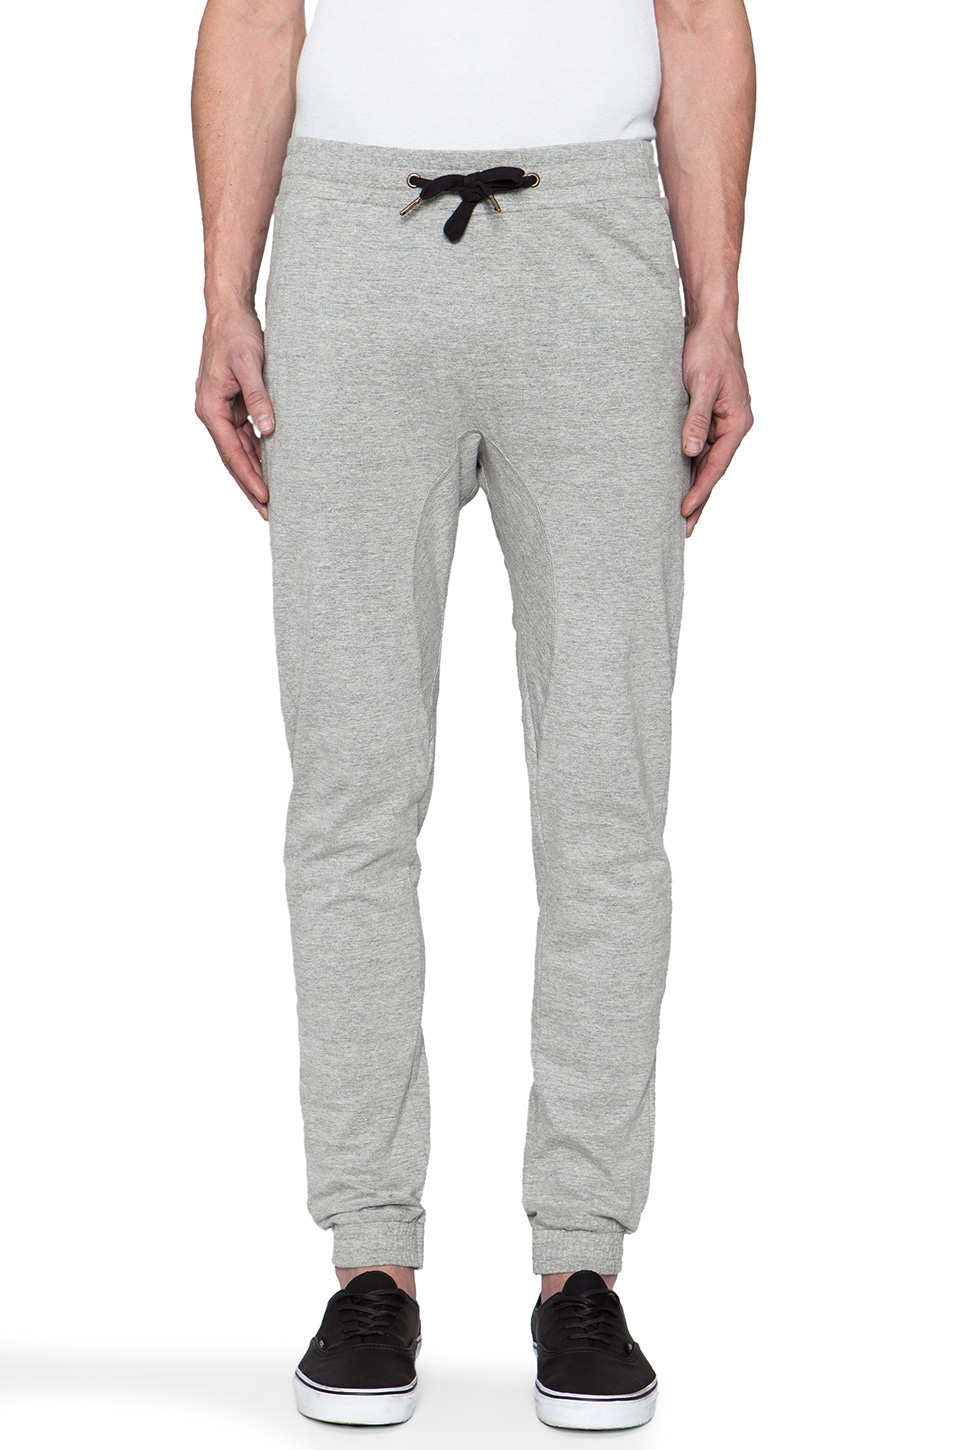 Zanerobe Das Buro Pant in Light Grey Marle